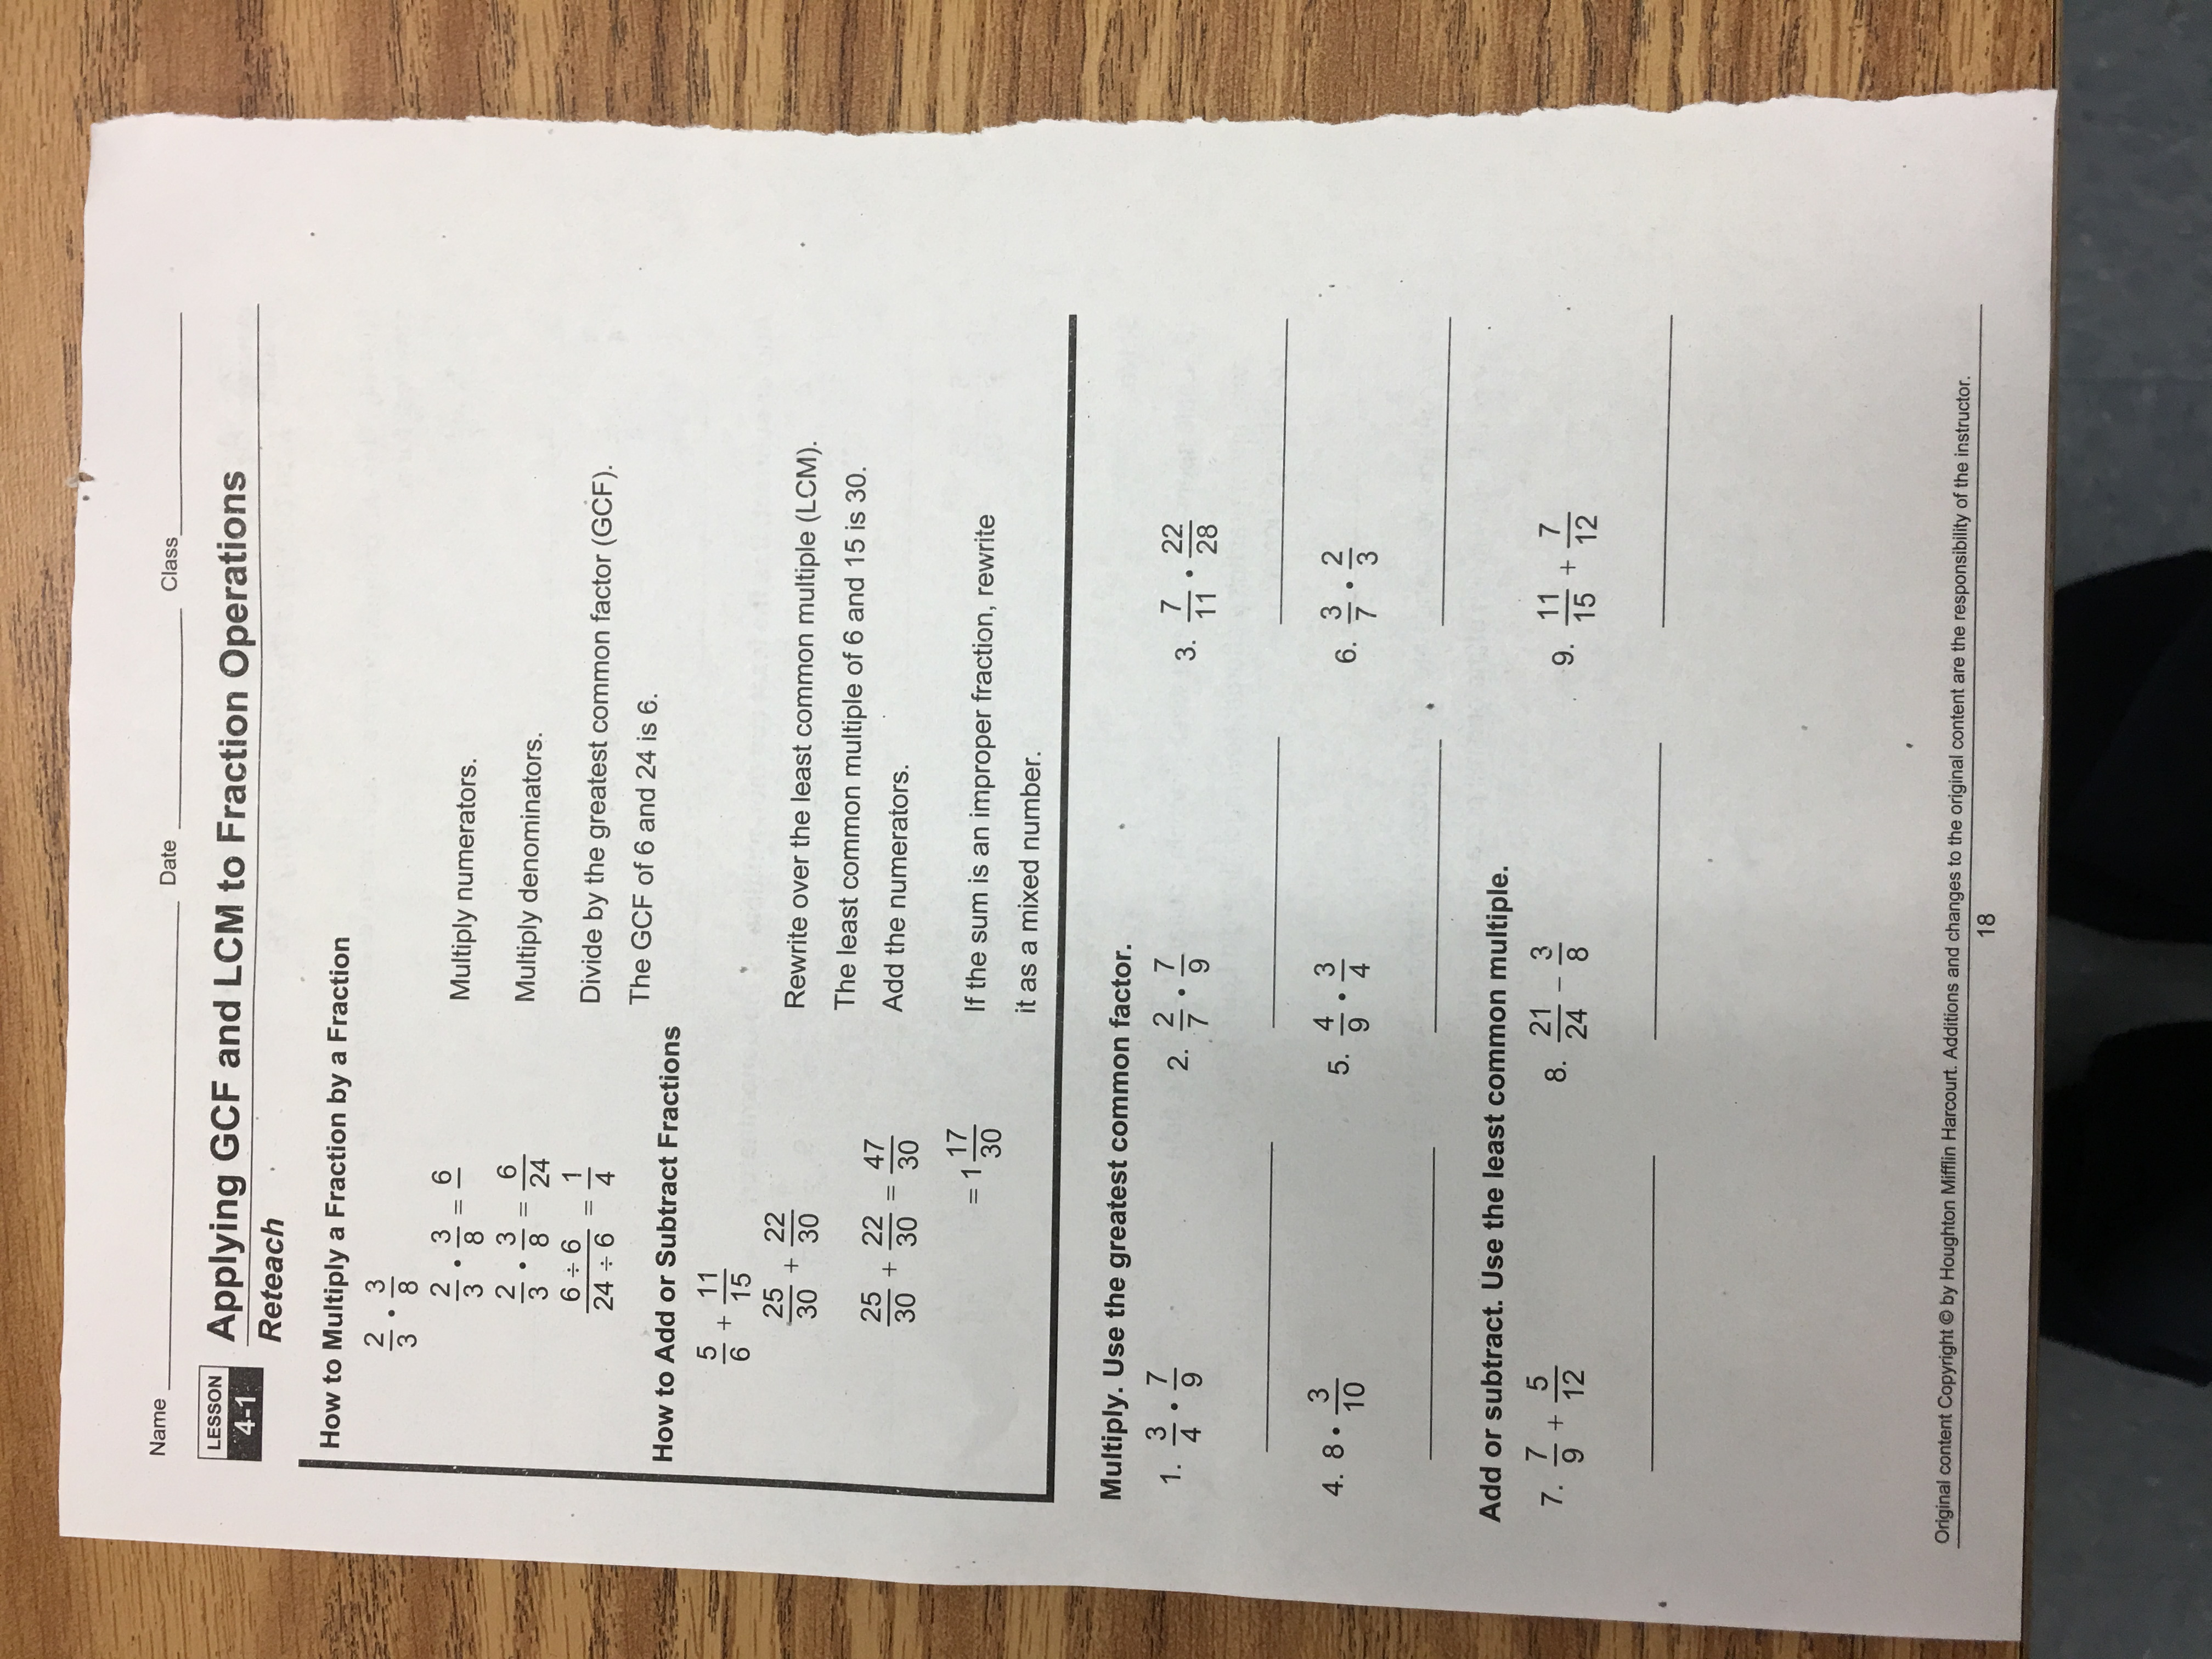 Hw 101716: Module 4, Lesson 41 Applying Gcf And Lcm To Fraction  Operations (pp 1718) * 2 Days Toplete!